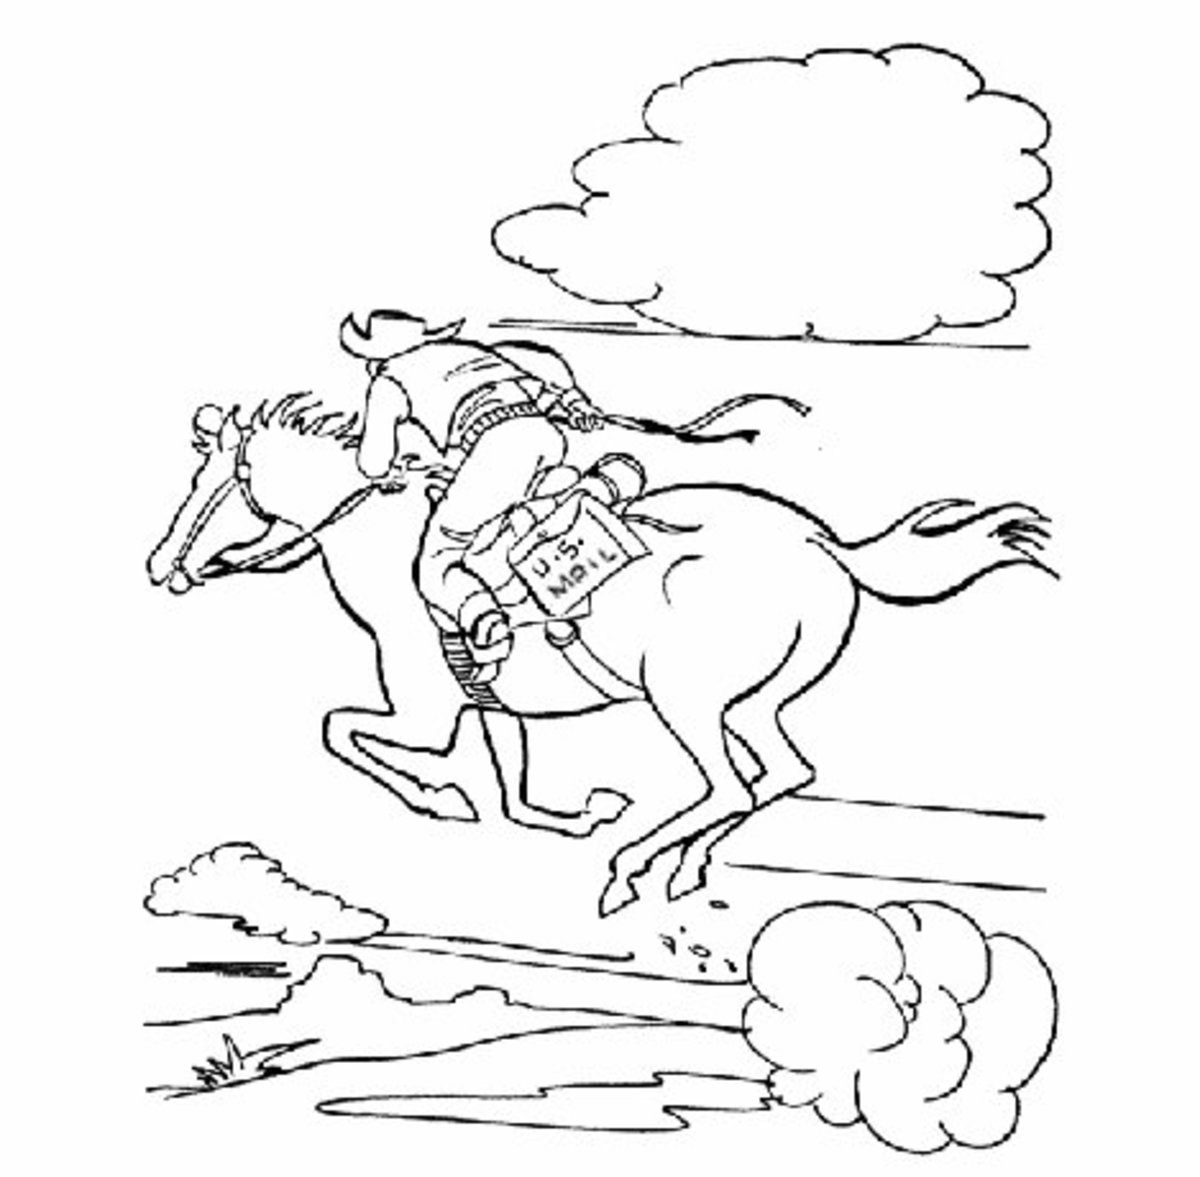 Pony express coloring pages ~ The Pony Express Coloring Pages For Kids Free Sketch ...